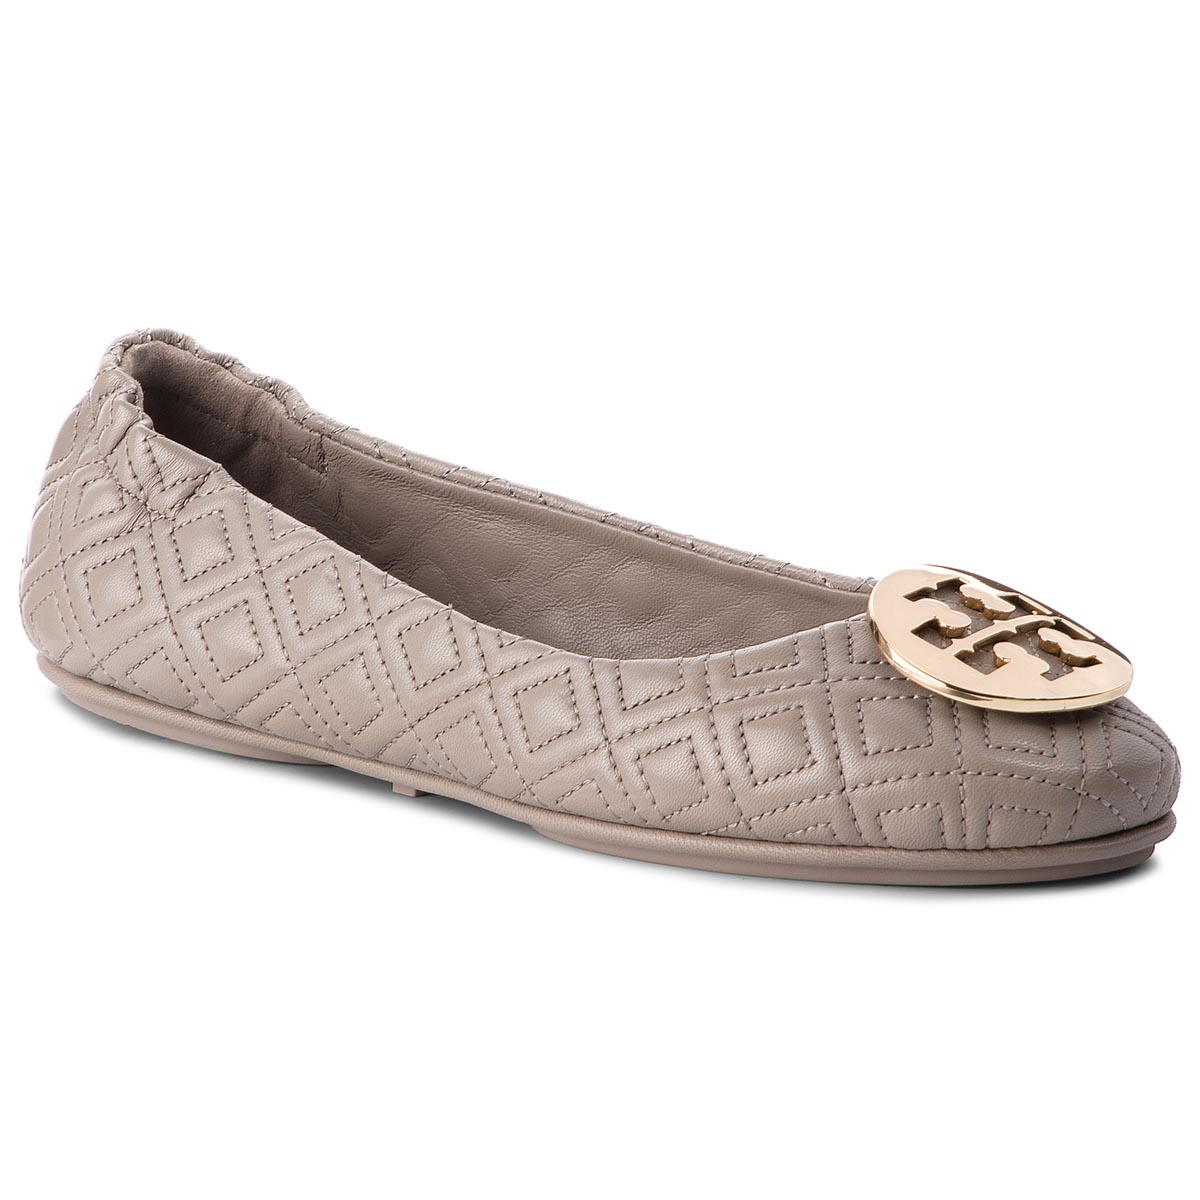 9bc60d18499a9 Baleriny TORY BURCH - Quilted Minnie 50736 Dust Storm Gold 976